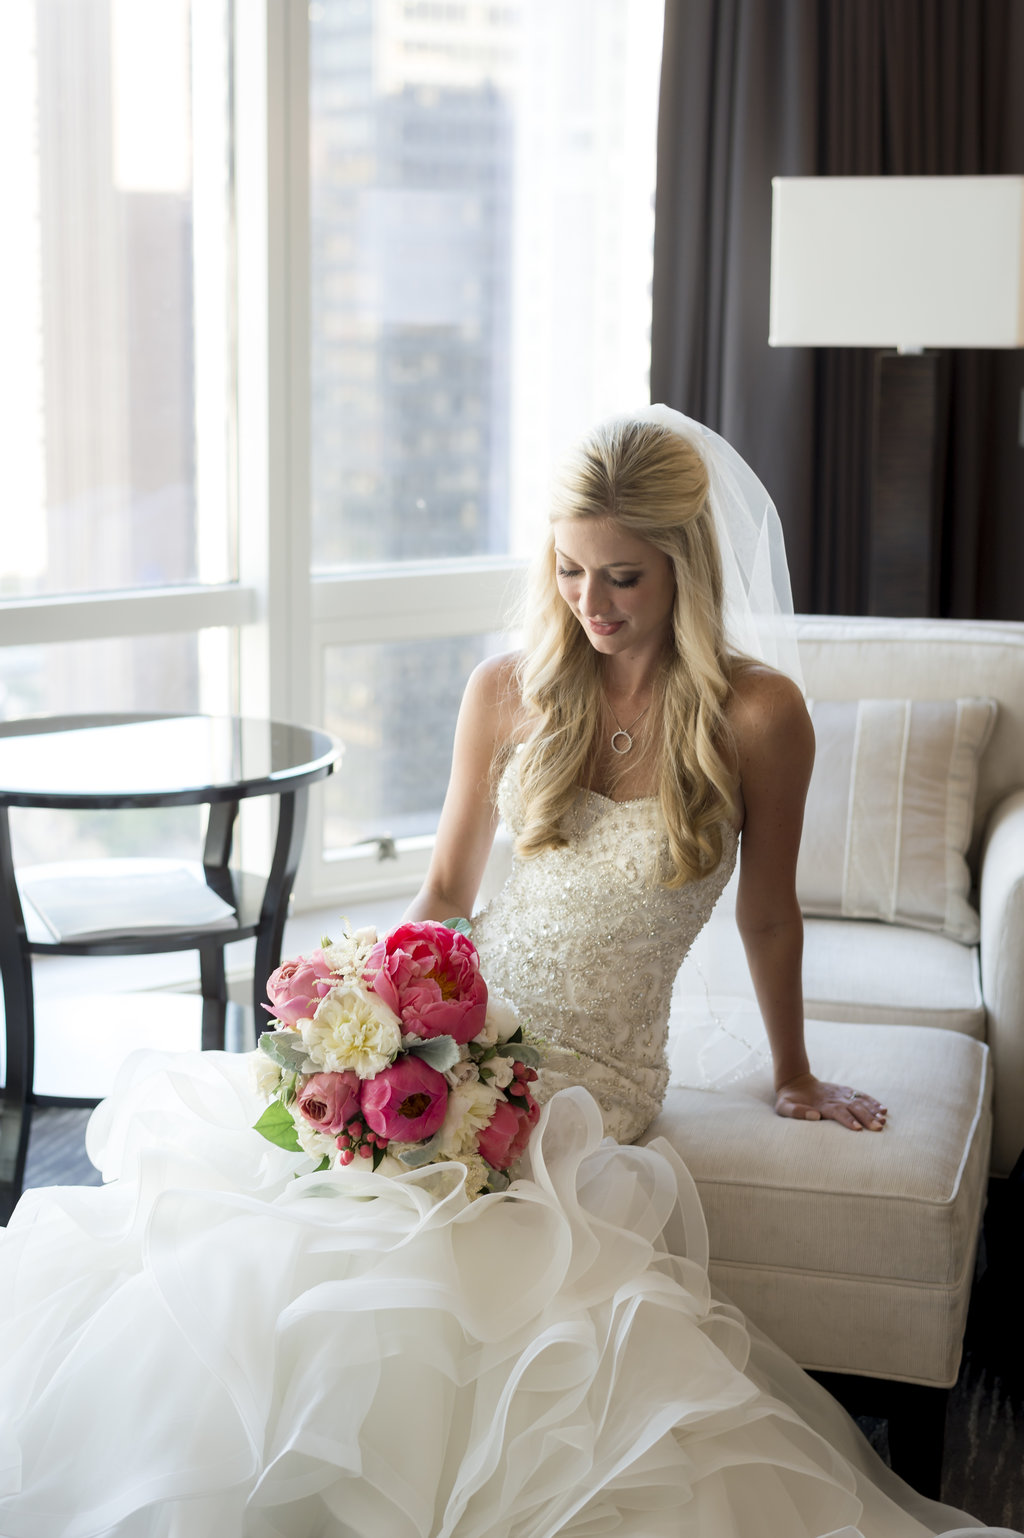 A Timeless Chicago Summer Wedding - The Overwhelmed Bride Wedding Inspiration Ideas Blog